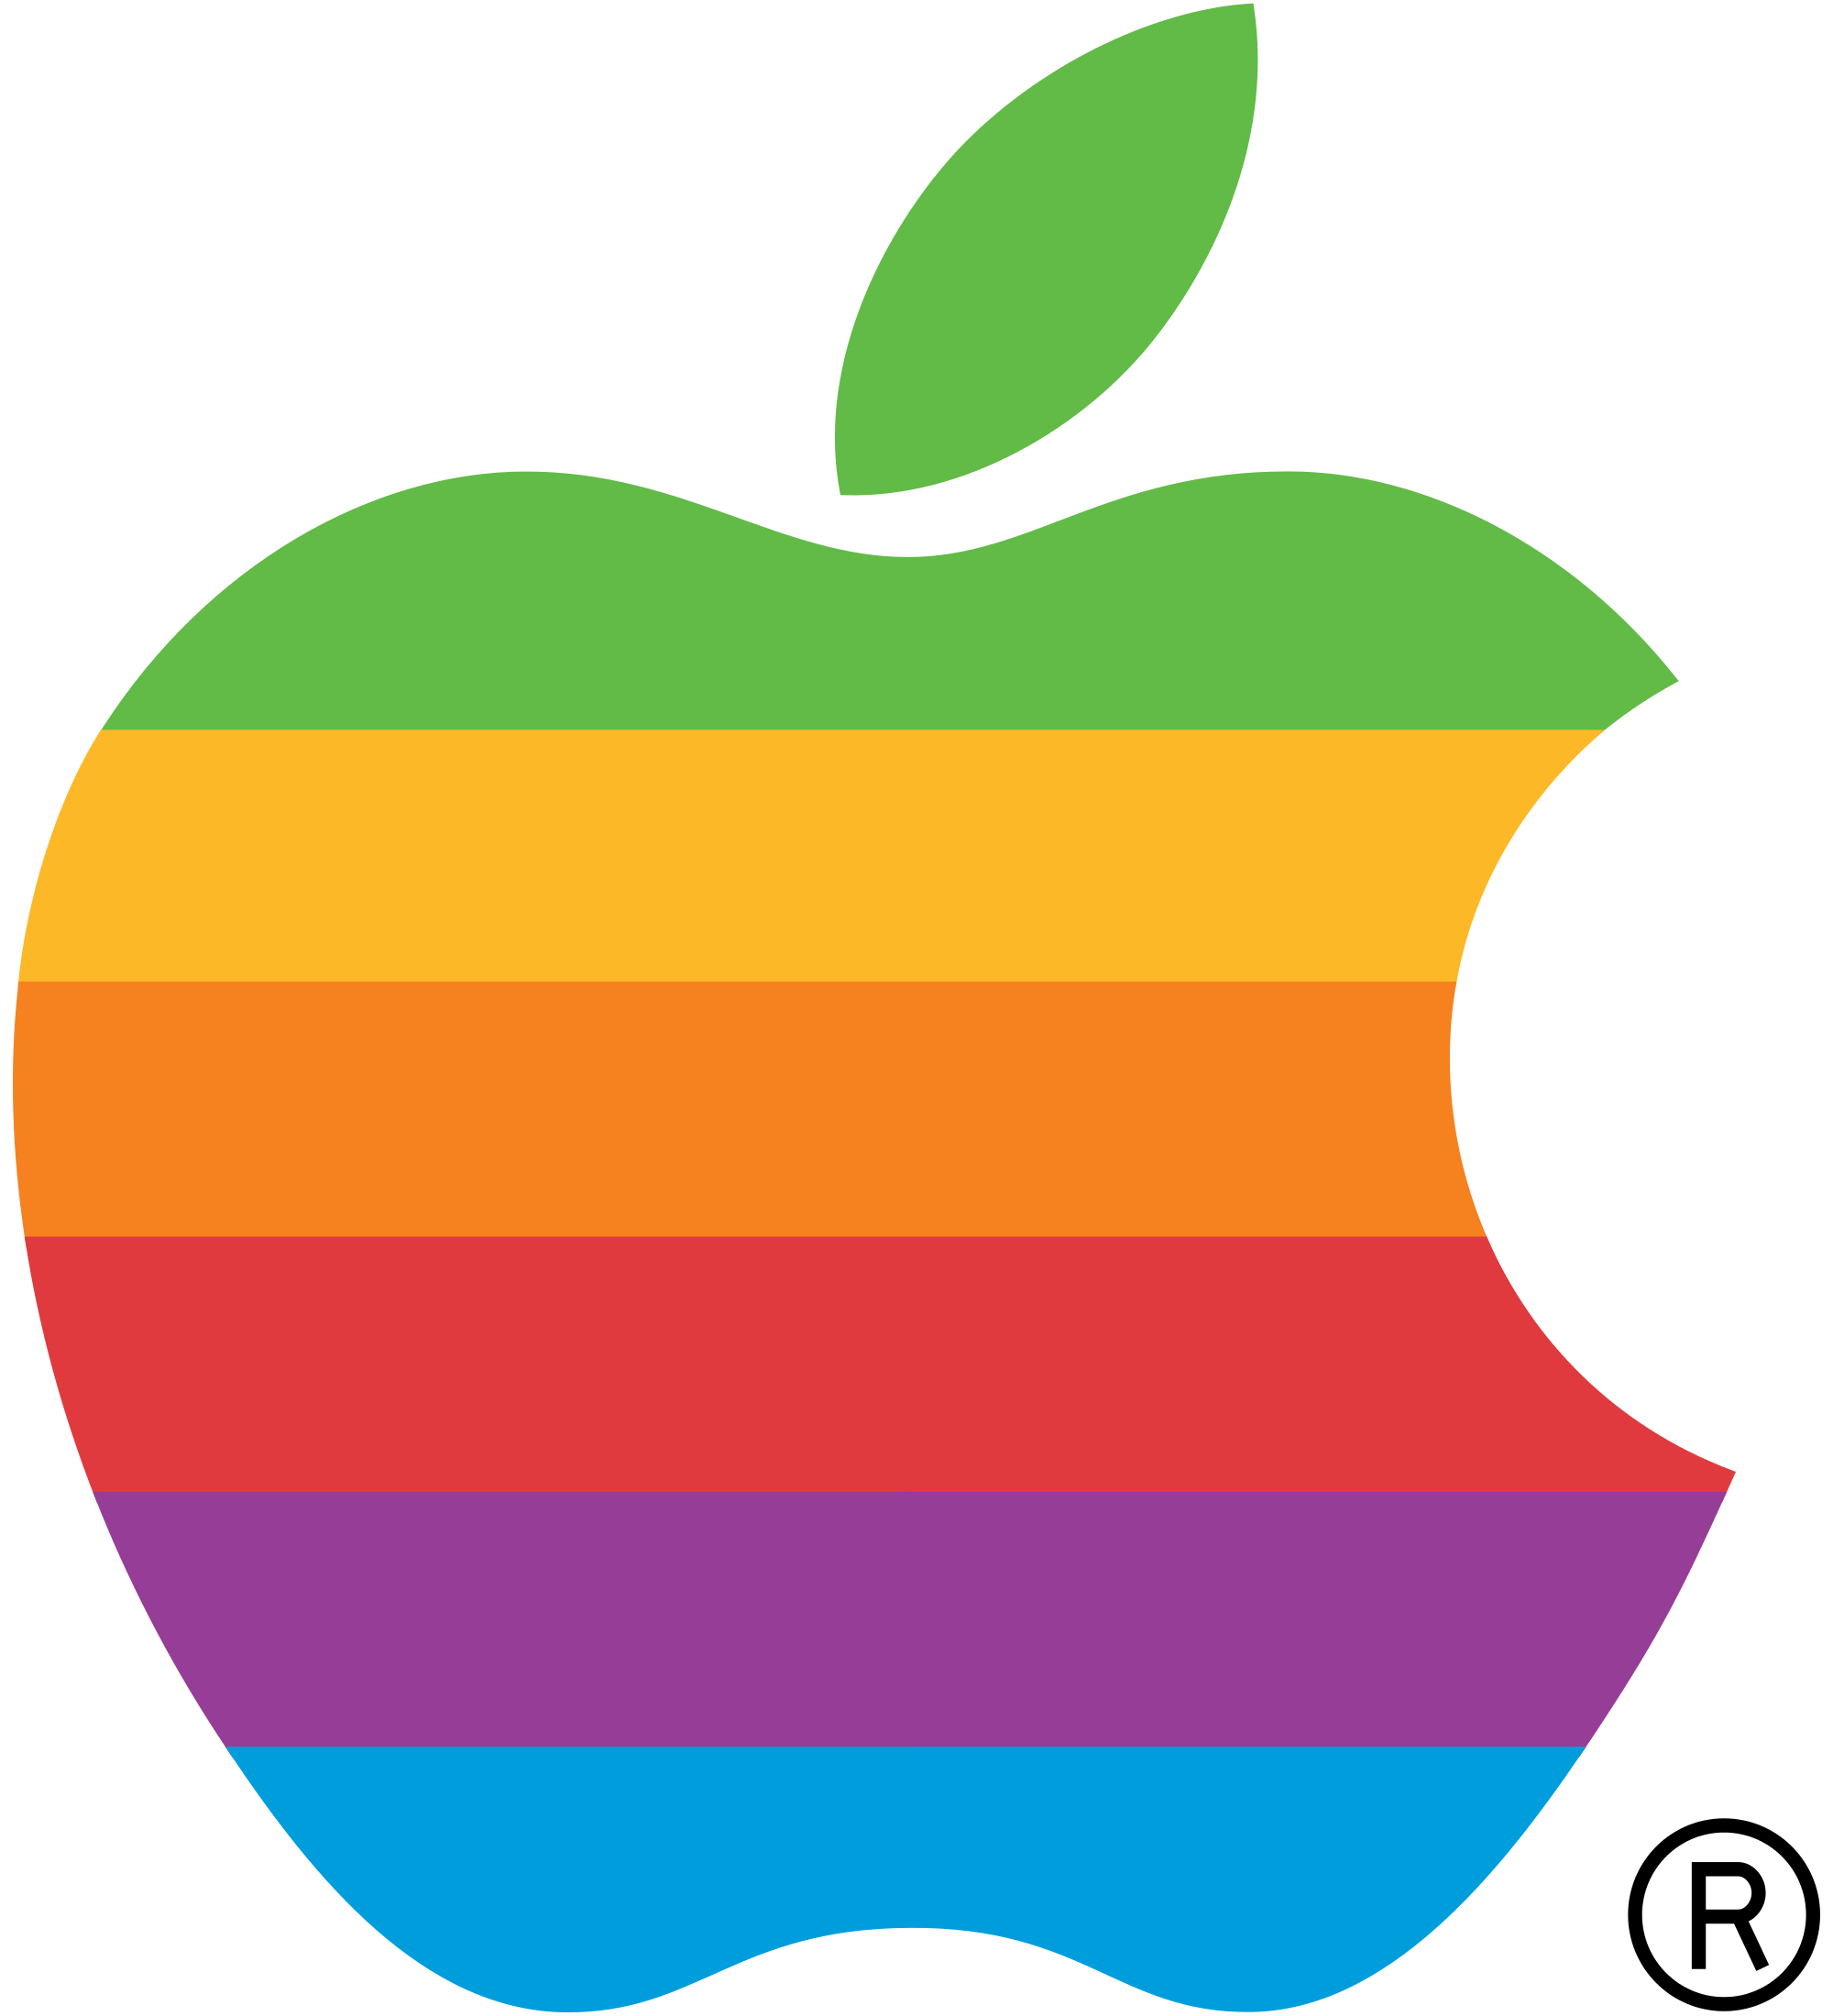 Free Apple, Download Free Clip Art, Free Clip Art on Clipart.